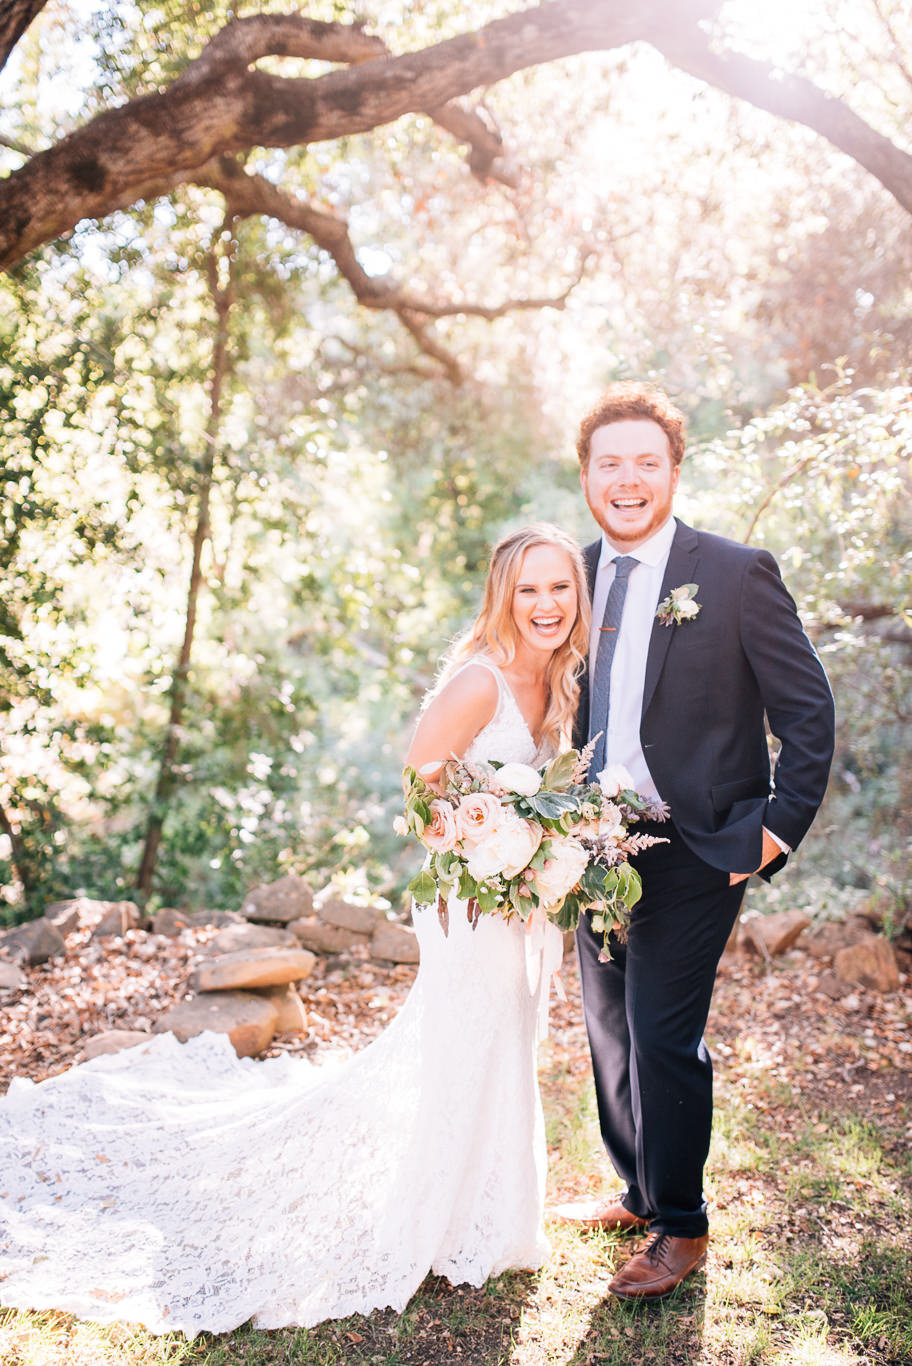 San Luis Obispo wedding photo by Amber McGaughey029